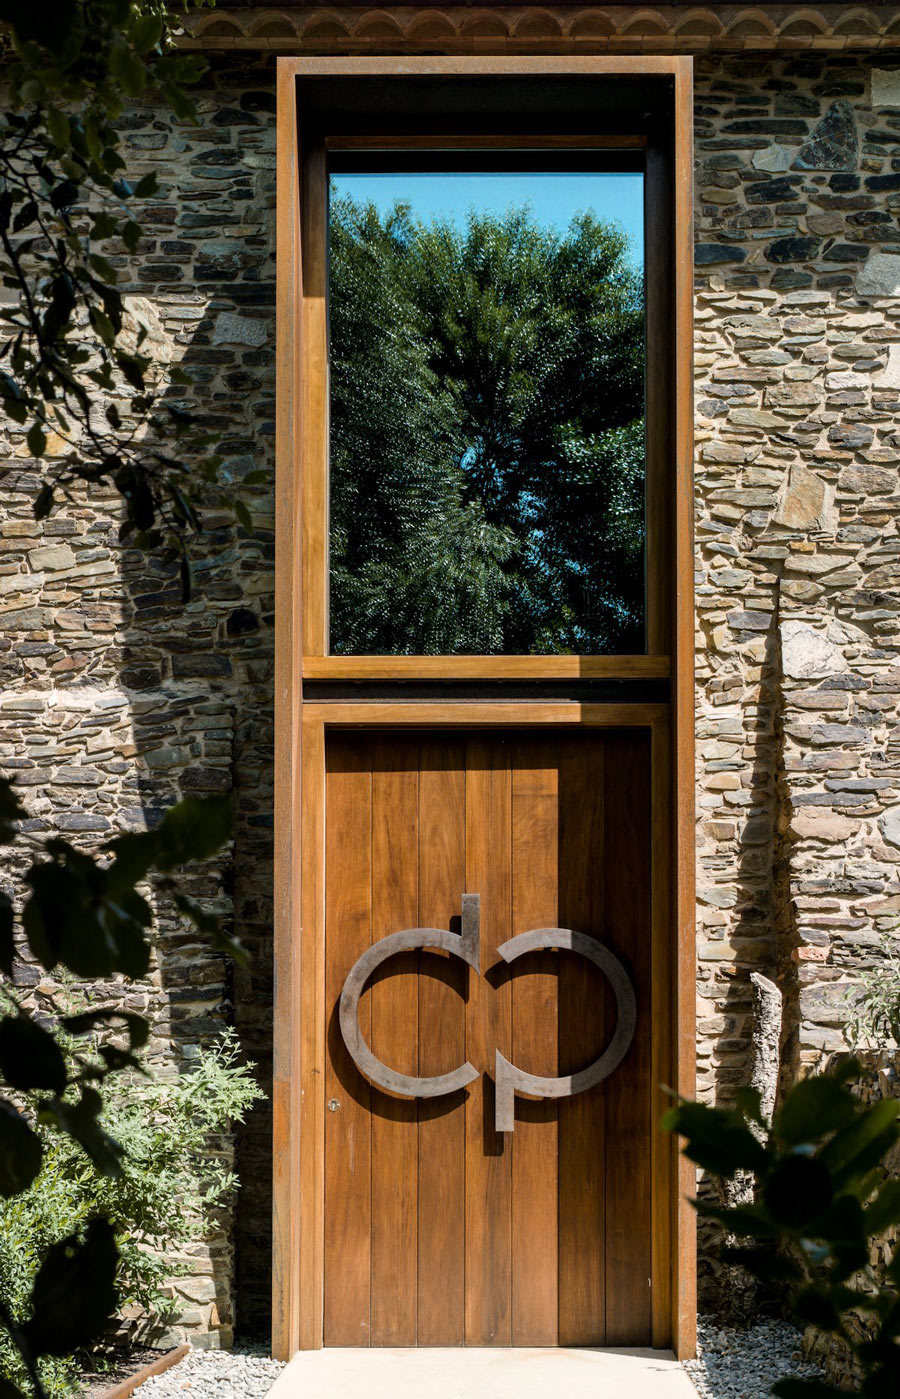 Wooden Front Door, Entrance, Catalan Farmhouse, Girona, Spain